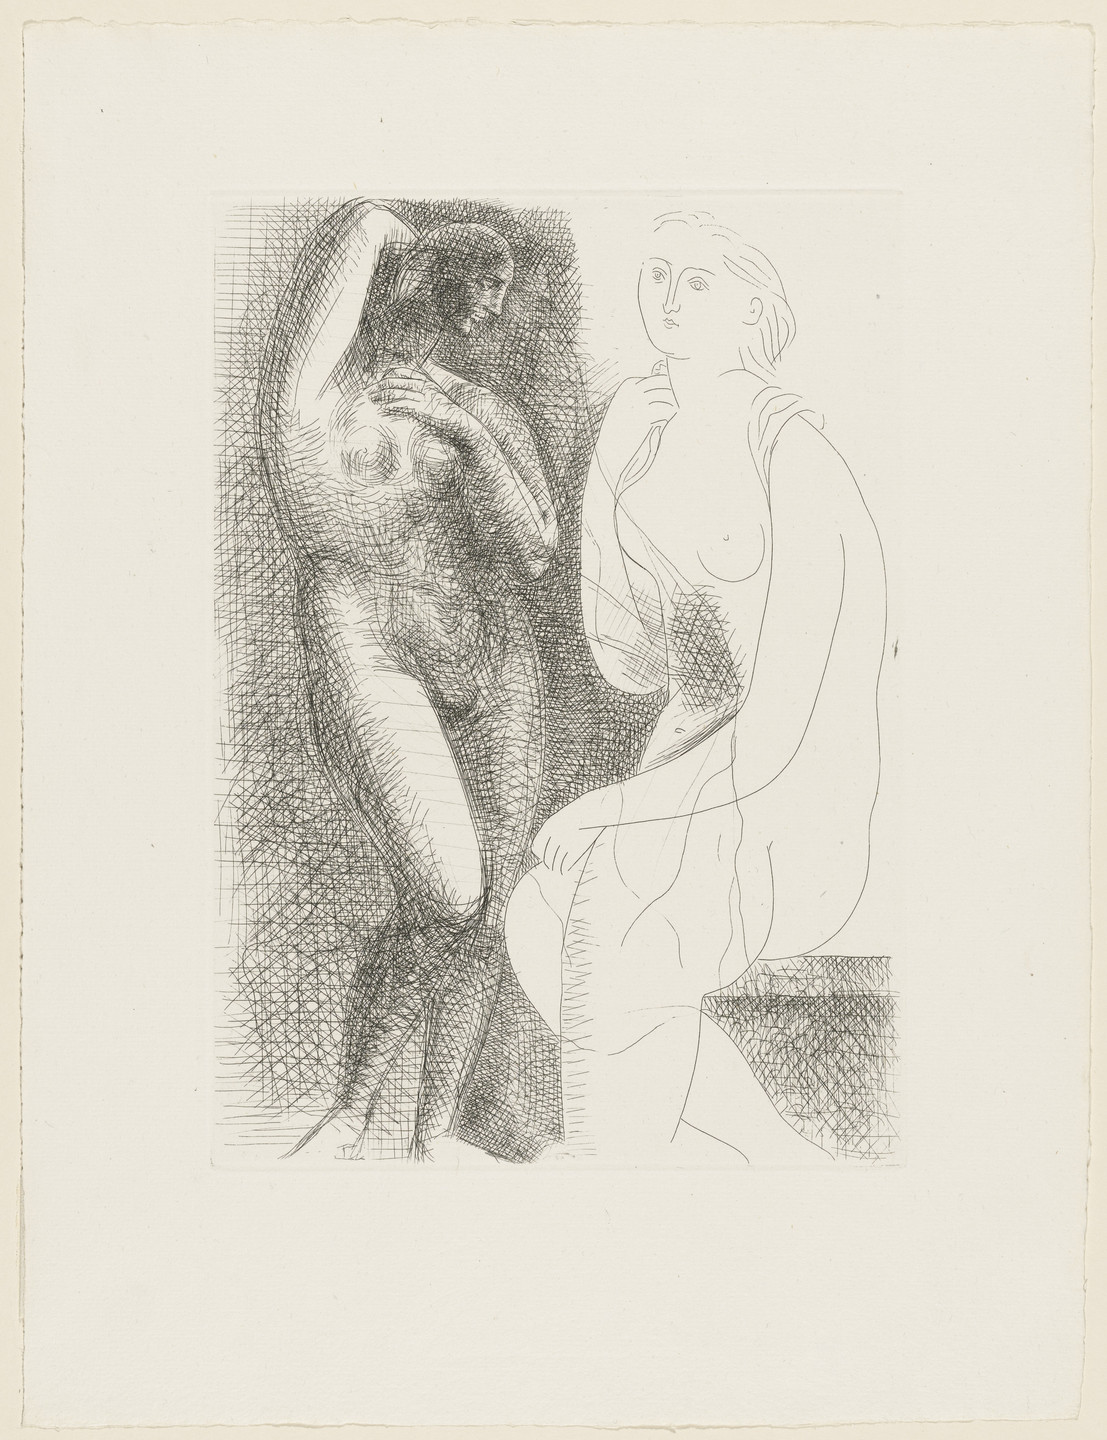 Pablo Picasso. Nude Woman Before a Statue (Femme nue devant une statue) from the Vollard Suite (Suite Vollard). 1931, published 1939